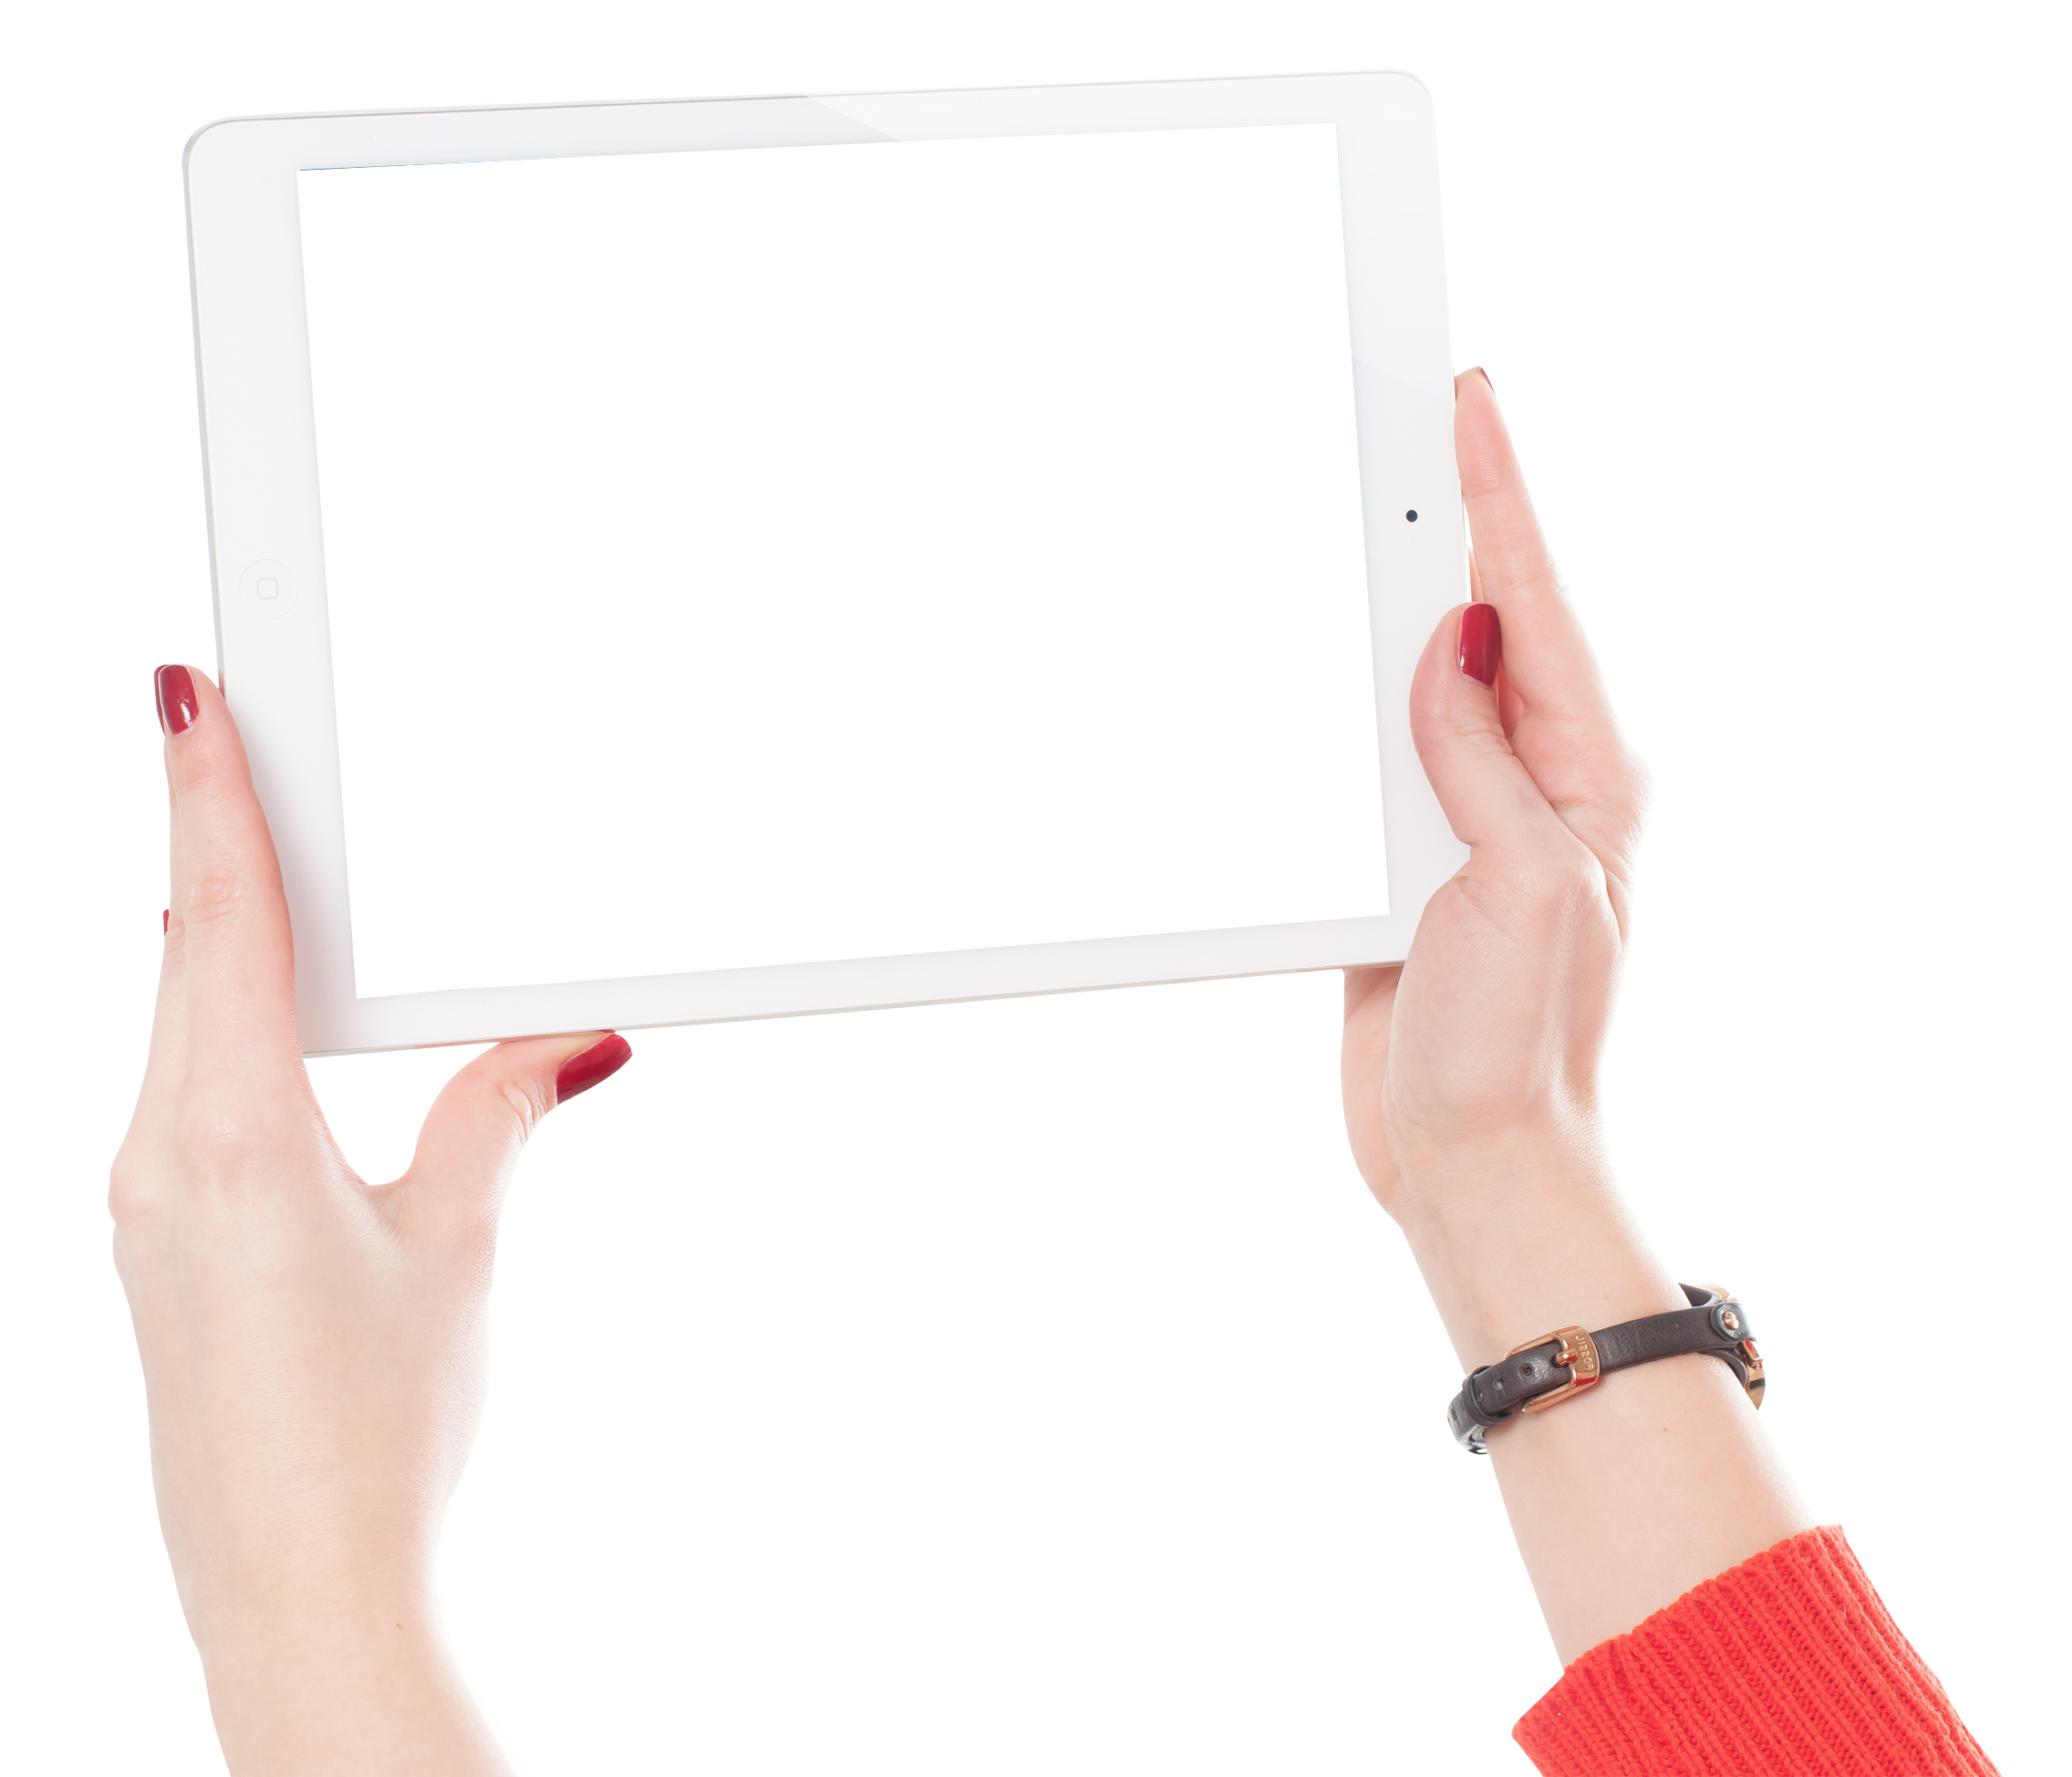 Apple ipad tablet clipart jpg free download Woman Hands Holding iPad PNG Image - PurePNG | Free transparent CC0 ... jpg free download